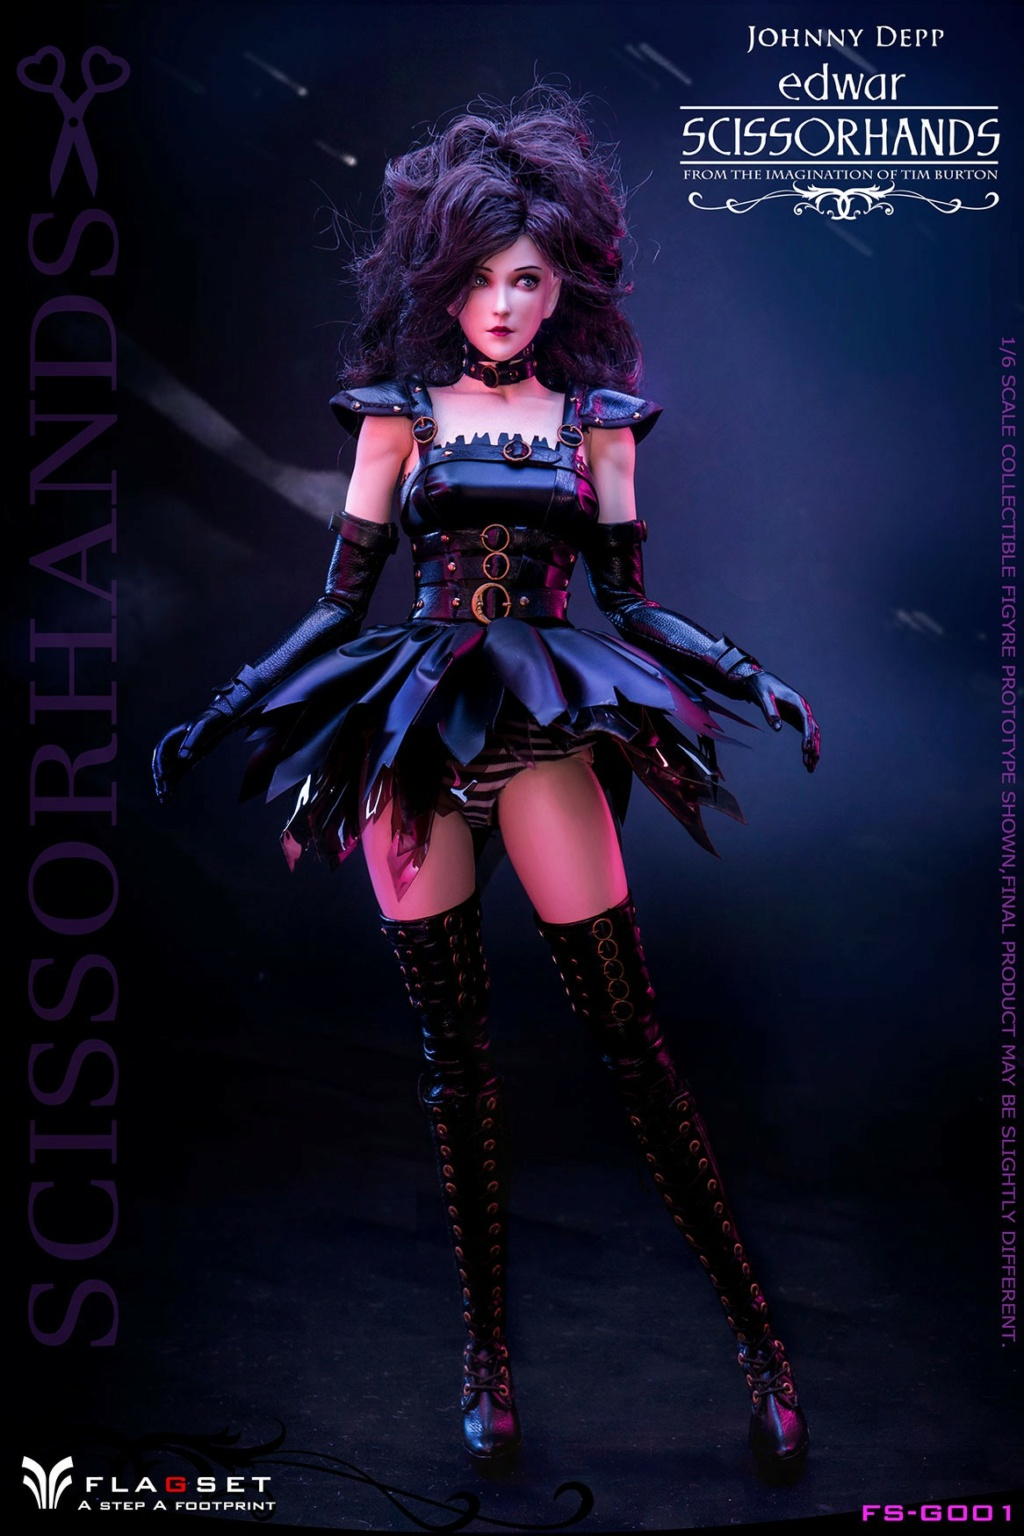 Stylized - NEW PRODUCT: Flagset: 1/6 Edwar Scissorhands (FS-G001#) (NOT A MISSPELLING, AND NOT WHAT YOU THINK) 11004310